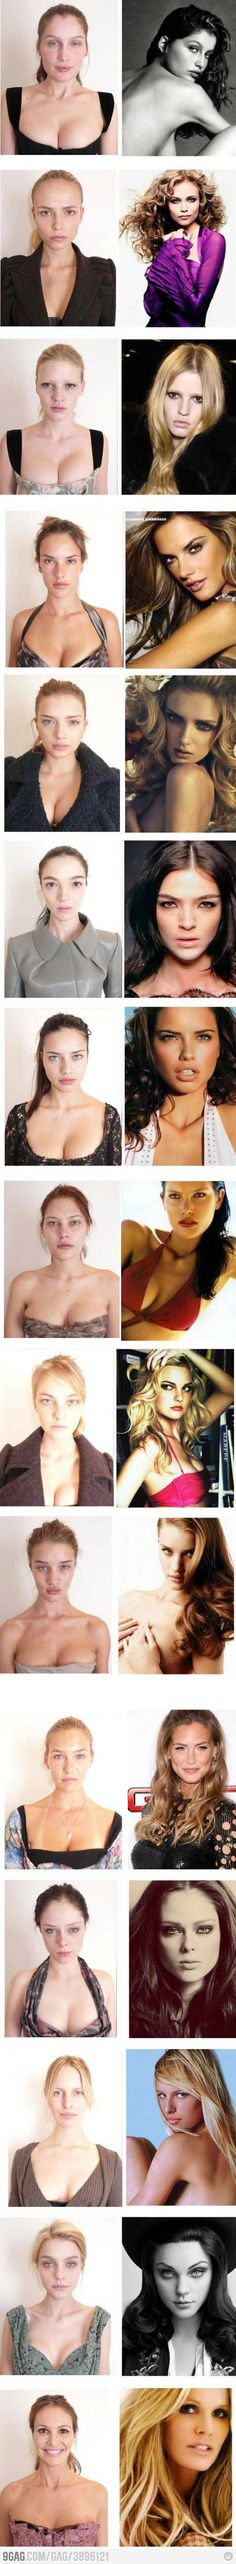 This makes me feel better...take off the make up and bronzer, do away with the styled hair and flattering lighting, nix the magical photographer...and they don't look so far from real women themselves!